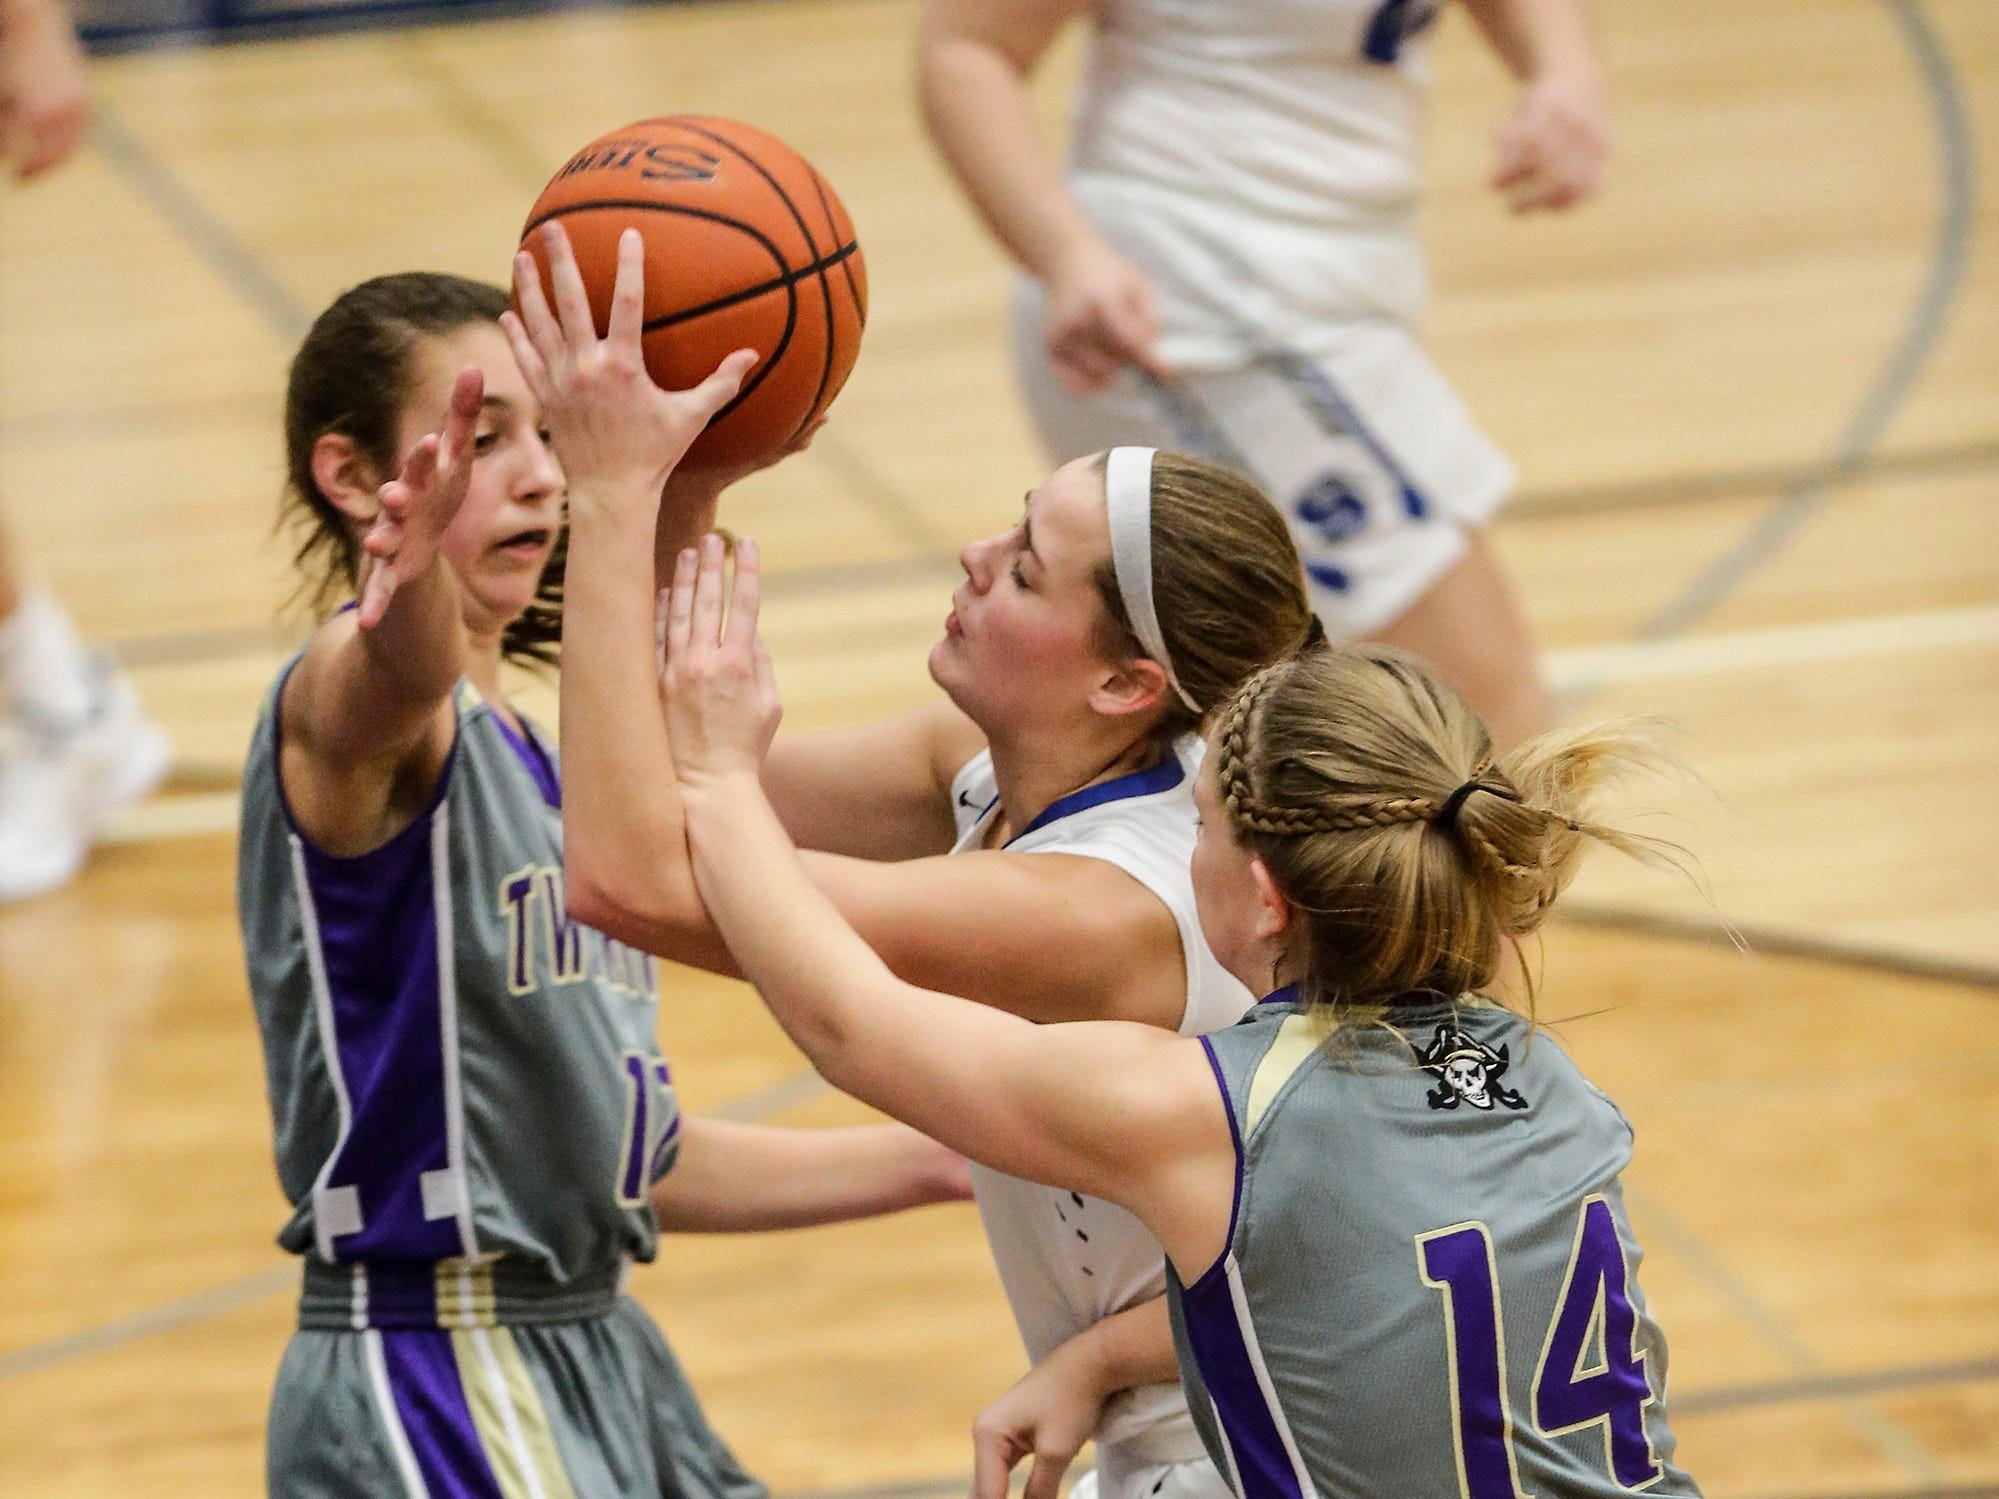 St. Mary's Springs girls basketball's Jennifer Chatterton splits Two Rivers High School's Ariana Zimney and Andrea Henrickson as she drives towards the basket during their game Friday, November 16, 2018 in Fond du Lac. Doug Raflik/USA TODAY NETWORK-Wisconsin